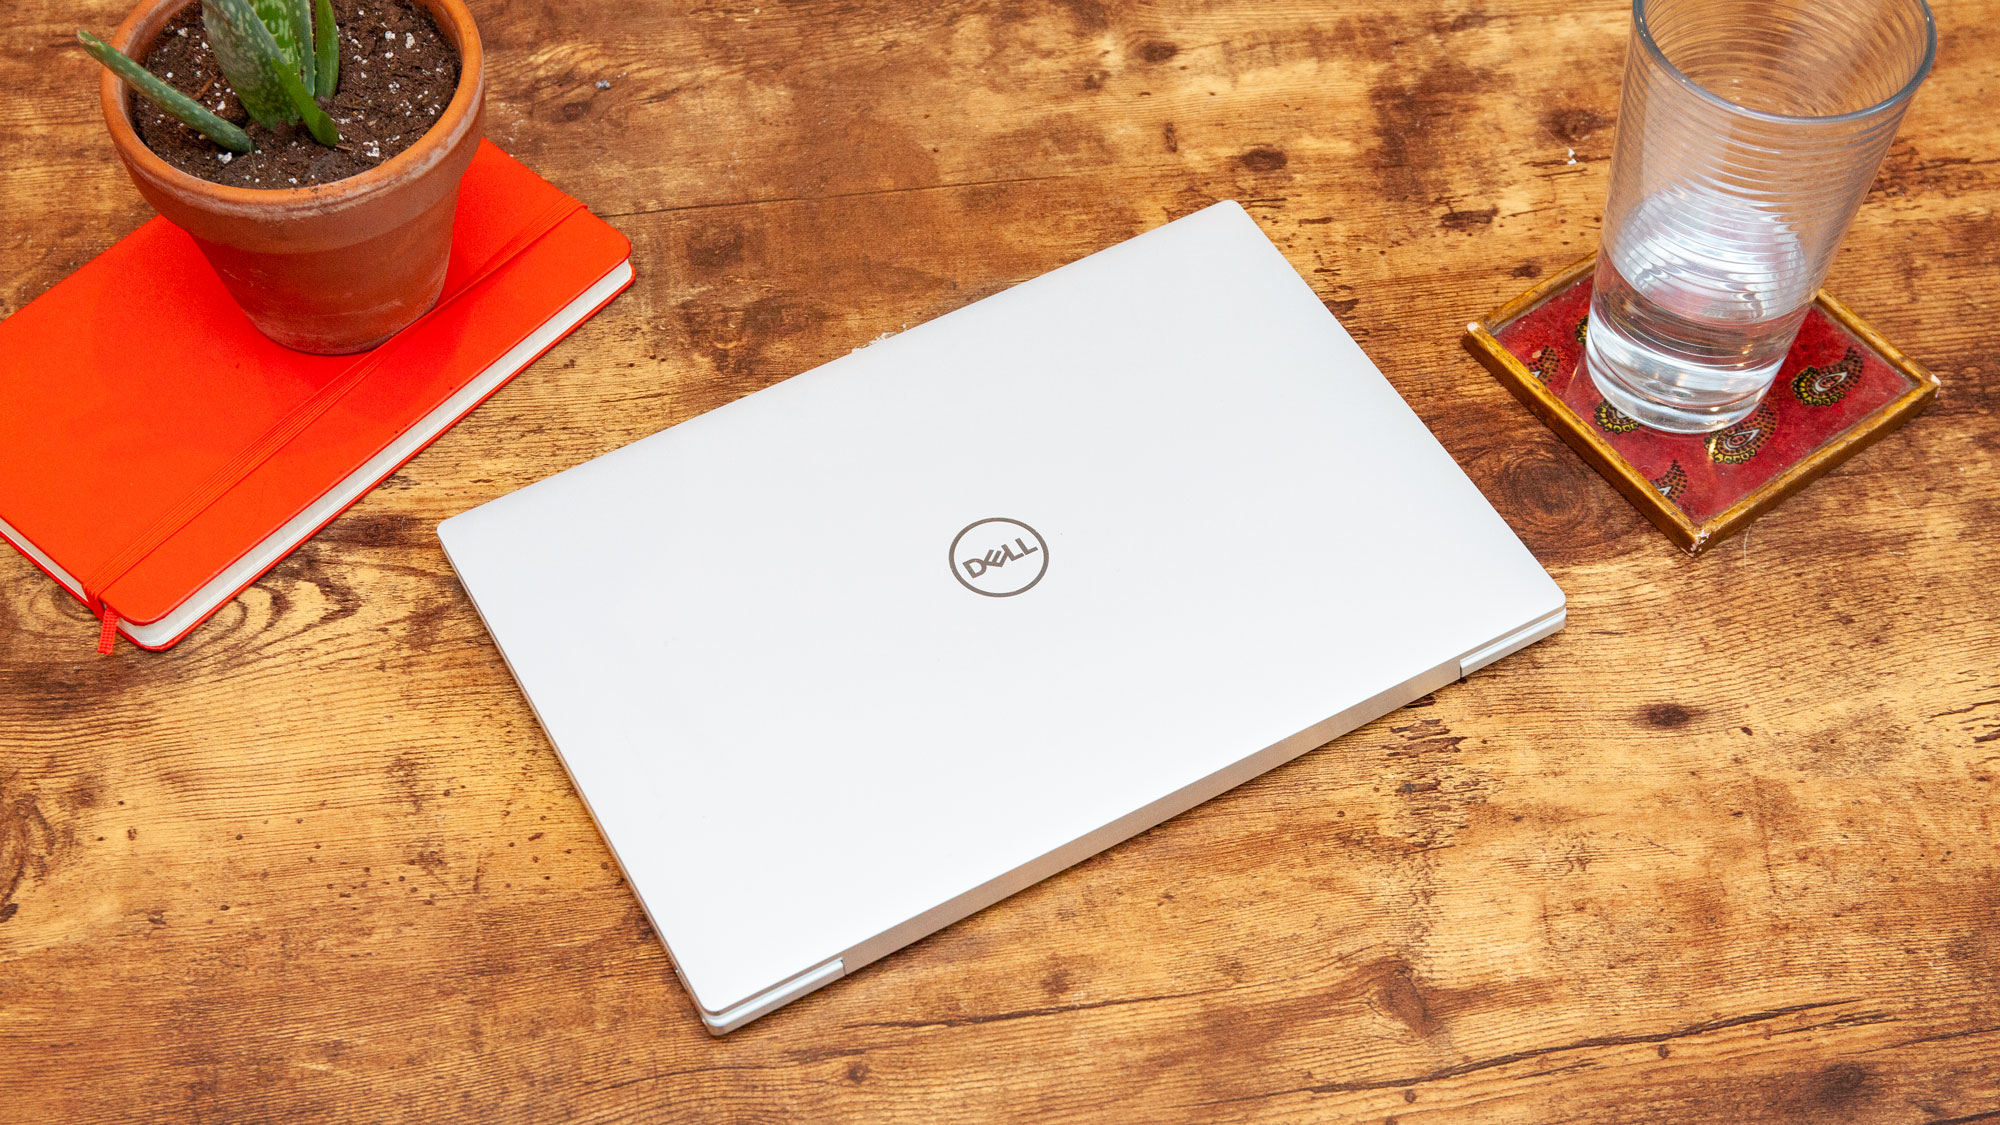 Are You Looking For Laptop Information? Read This